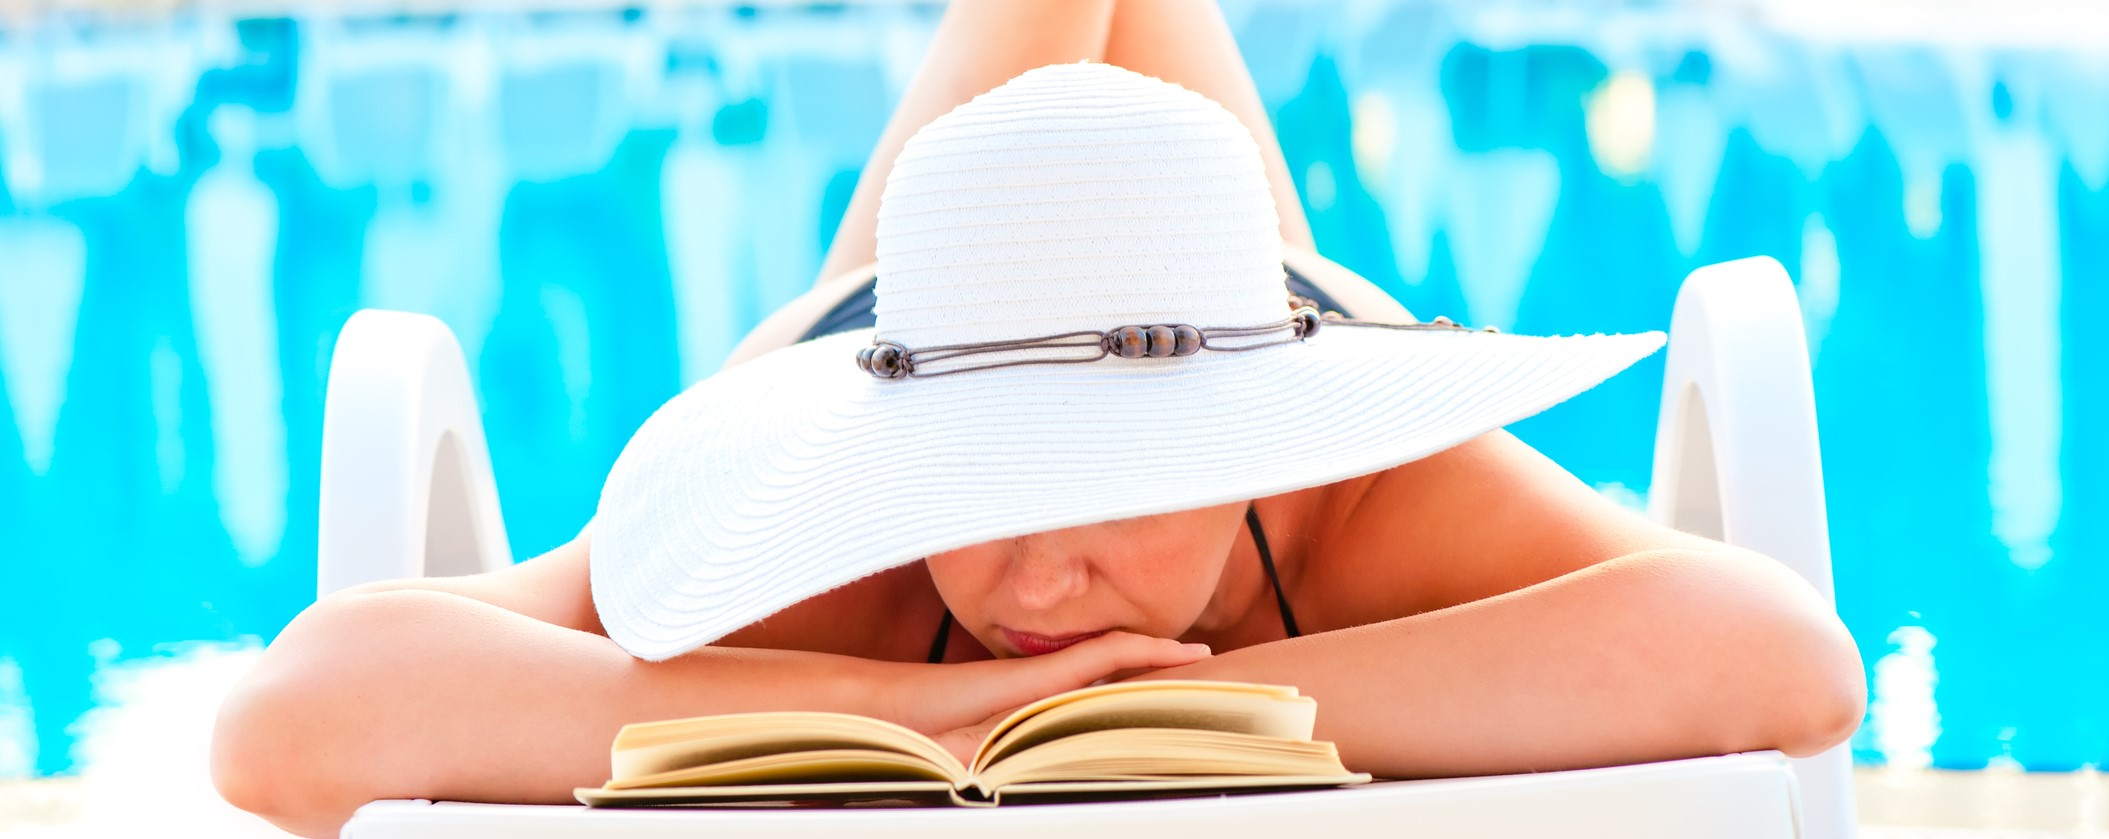 The 5 Best Books To Read By Your Pool This Summer